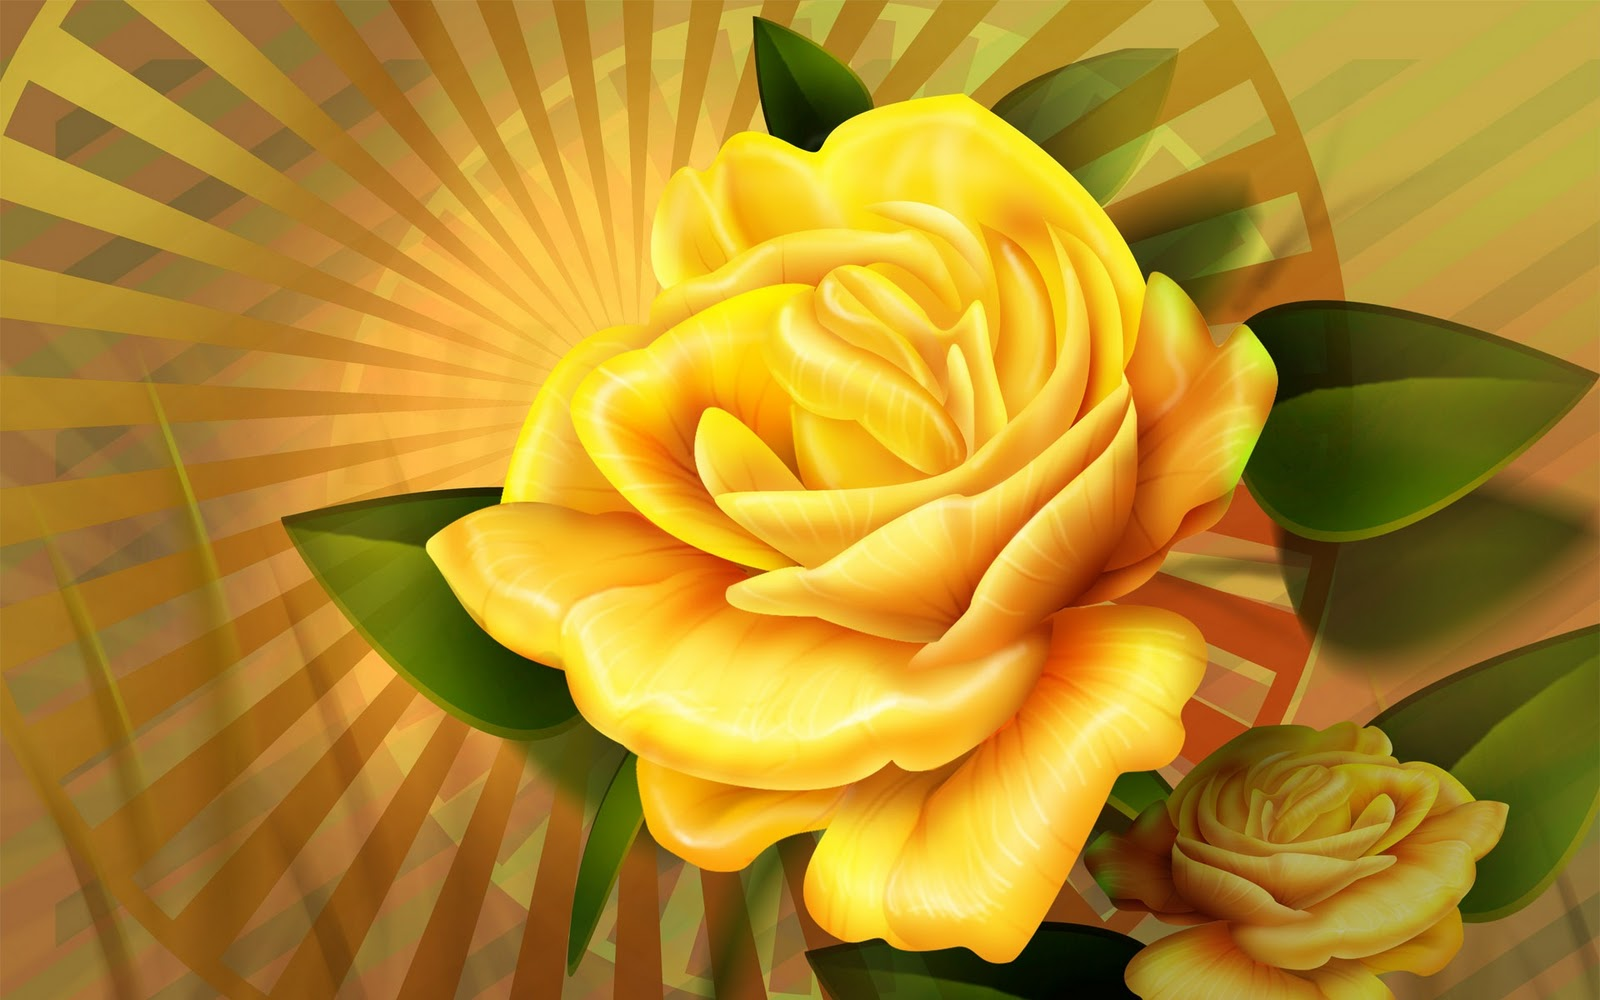 http://2.bp.blogspot.com/-Qu9eObPrASc/UPS43JlhwkI/AAAAAAAAAts/Omq14yfNKwY/s1600/The-best-top-desktop-roses-wallpapers-hd-rose-wallpaper-51-3d-yellow-rose.jpg